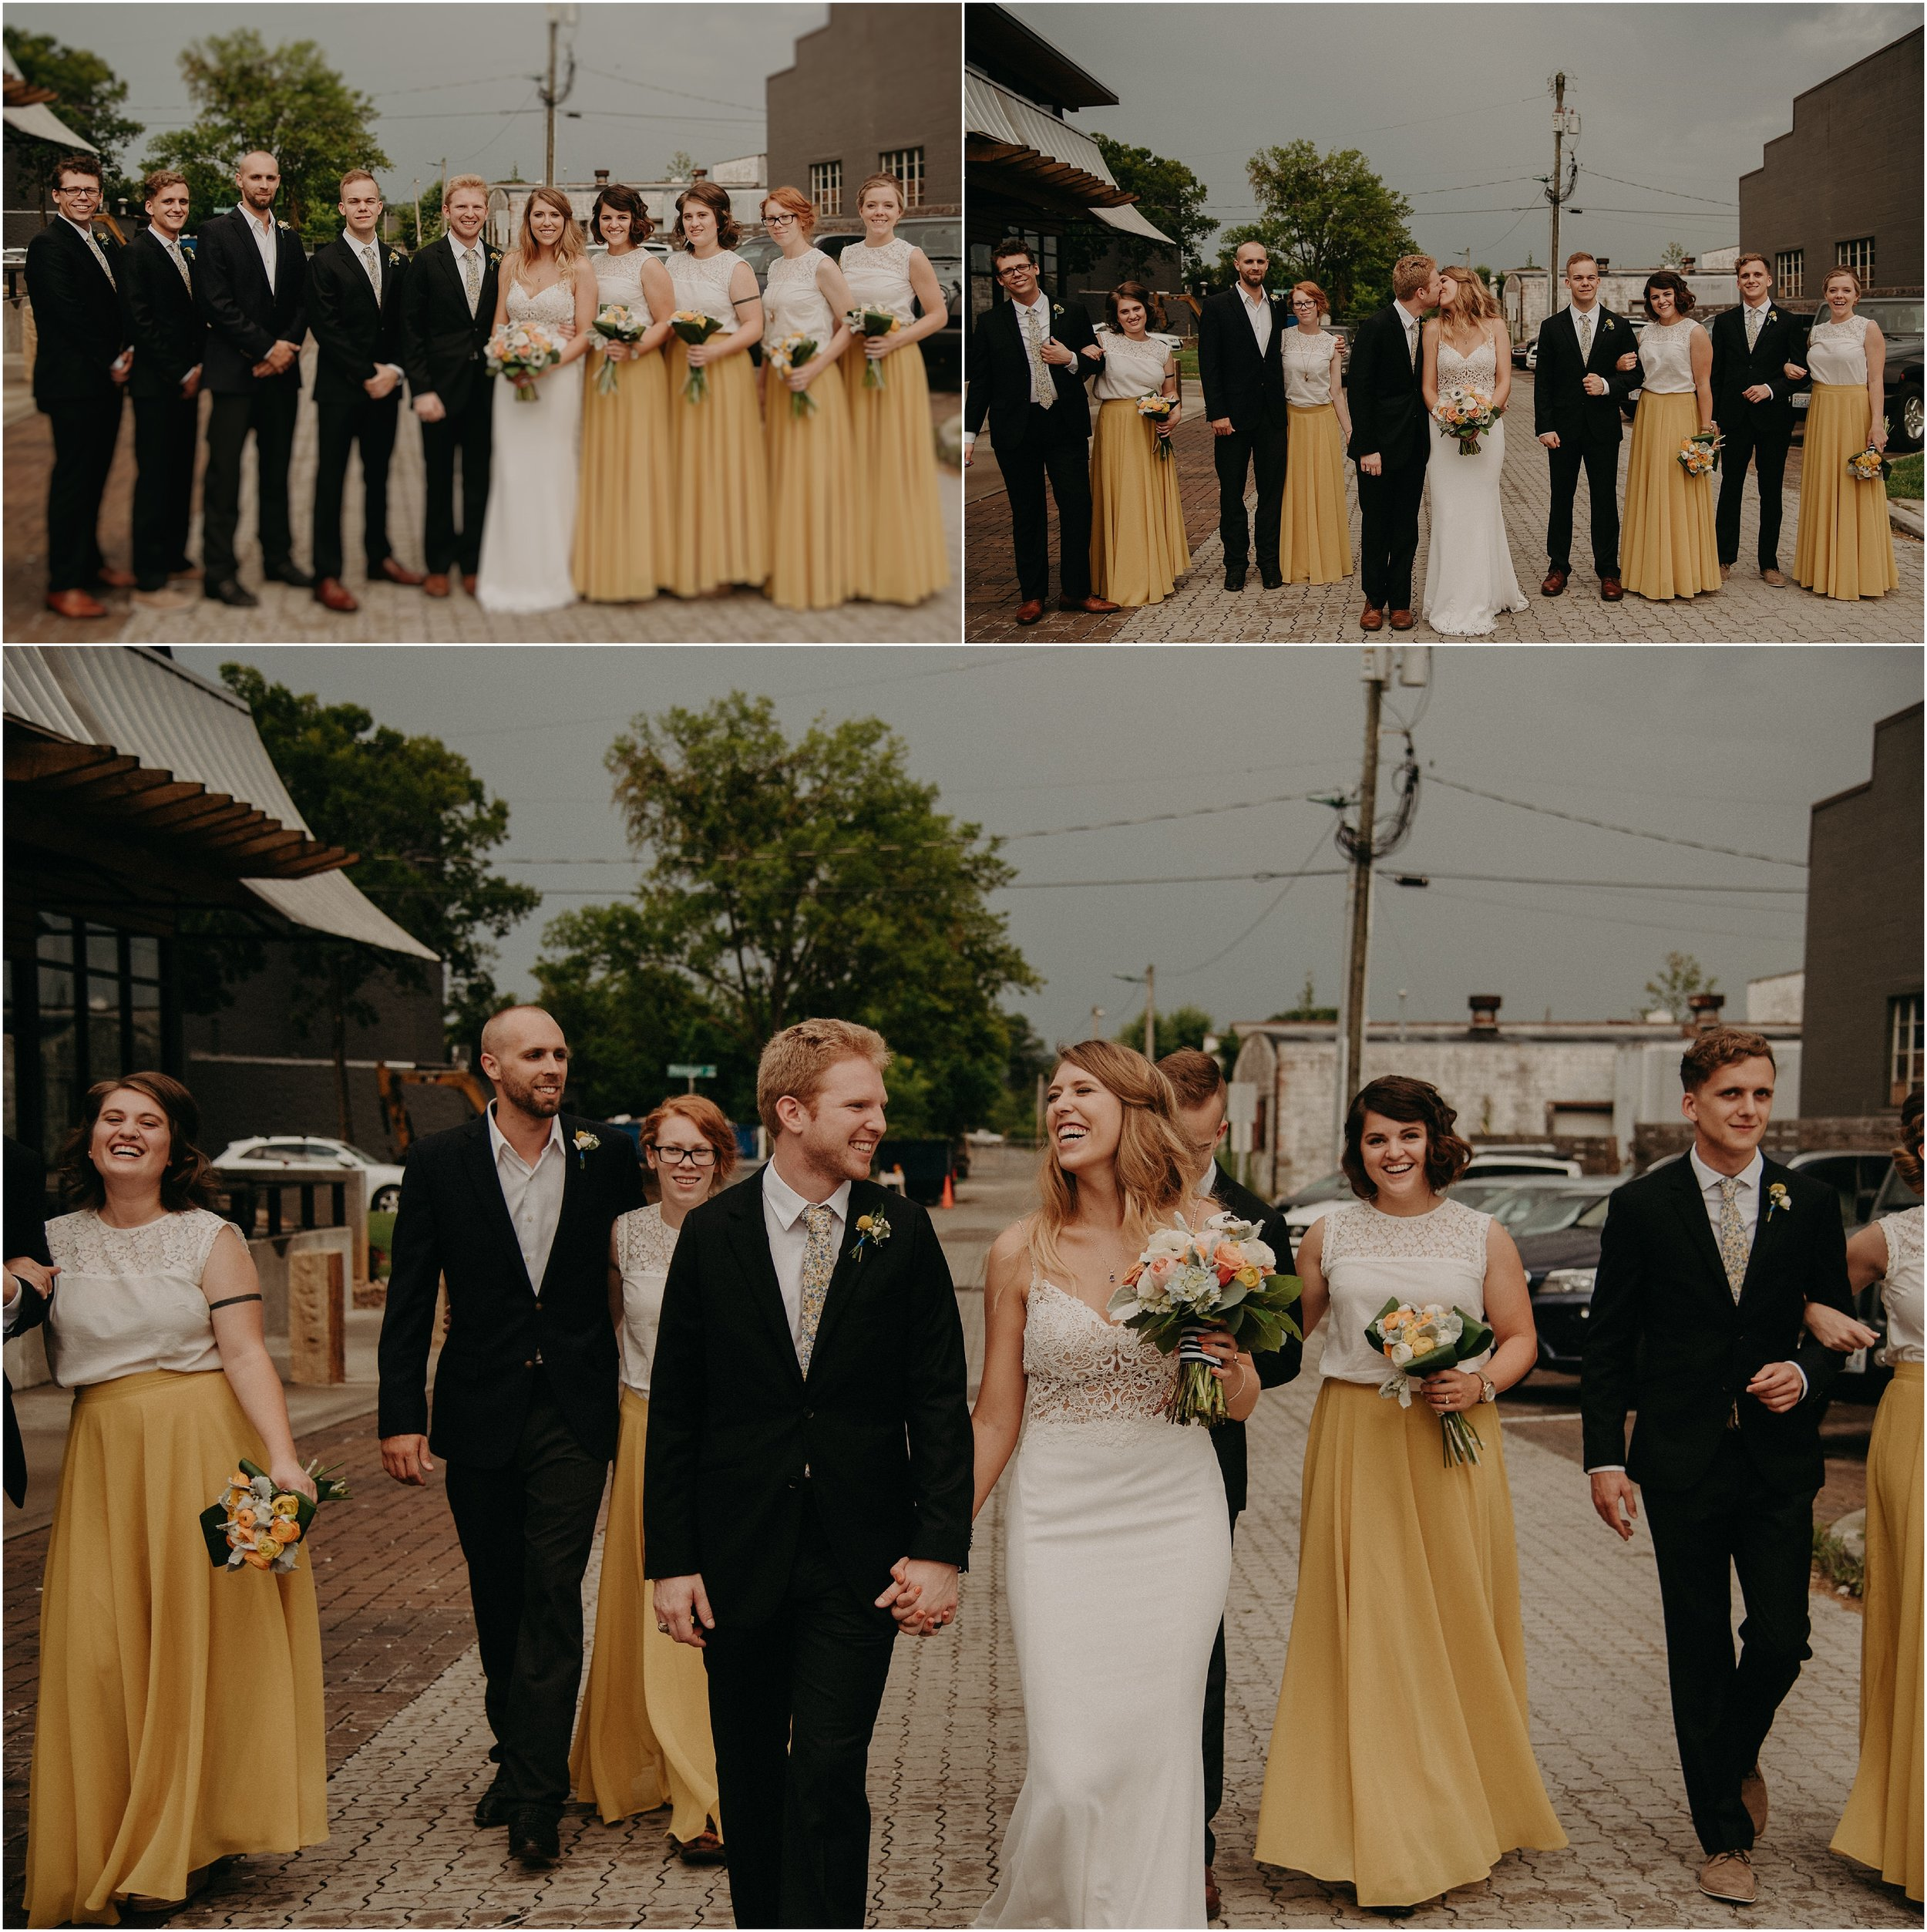 Wedding party portraits in the streets of downtown Chattanooga, Tennessee